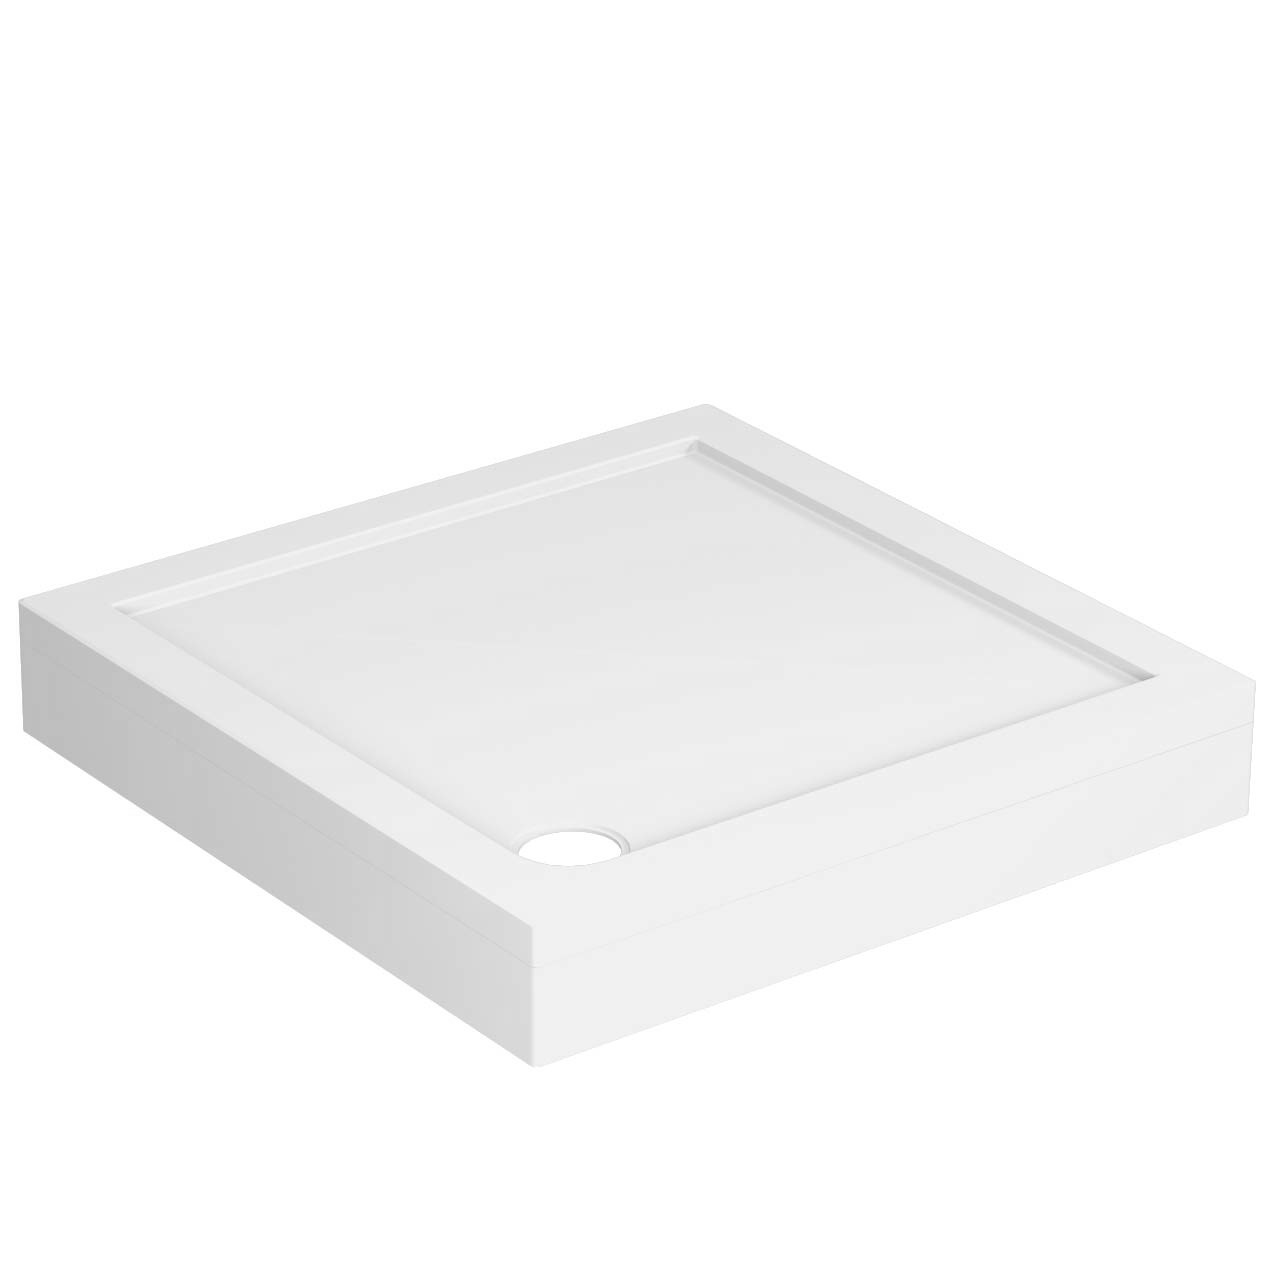 40mm Pearlstone 800 x 800 Square Shower Tray & Plinth